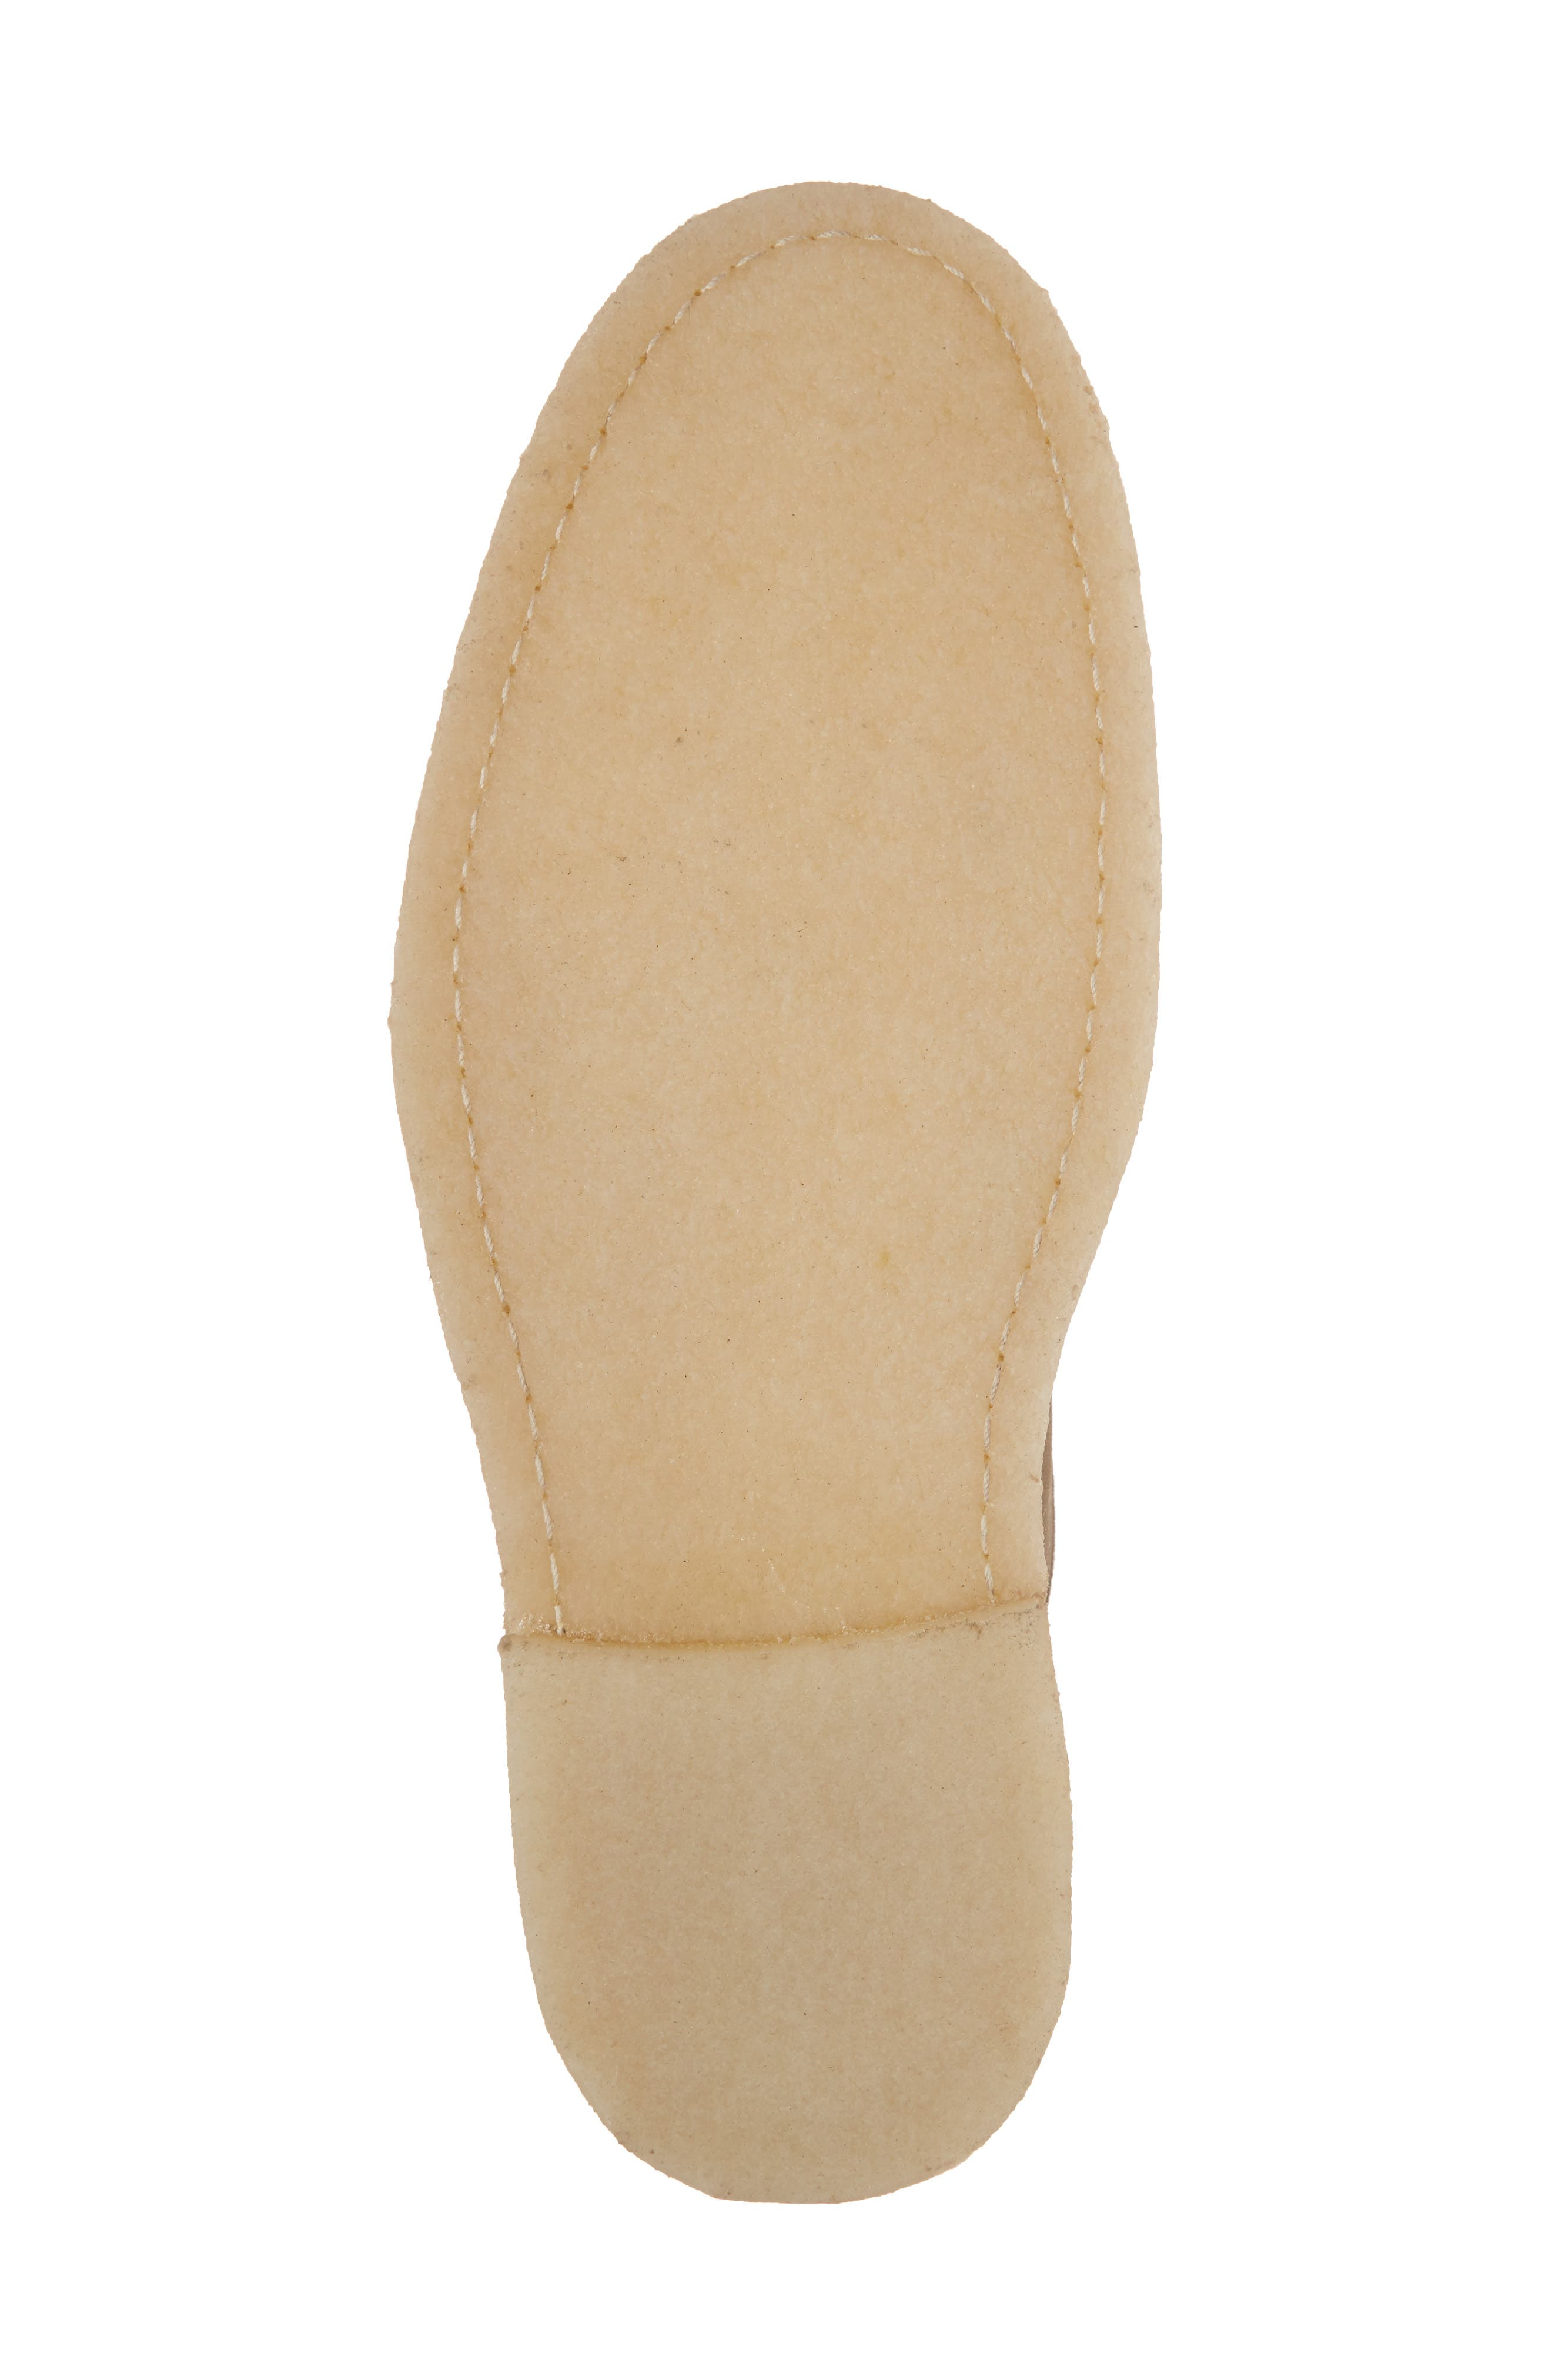 Stitchout Chukka Boot,                             Alternate thumbnail 6, color,                             Sand Suede